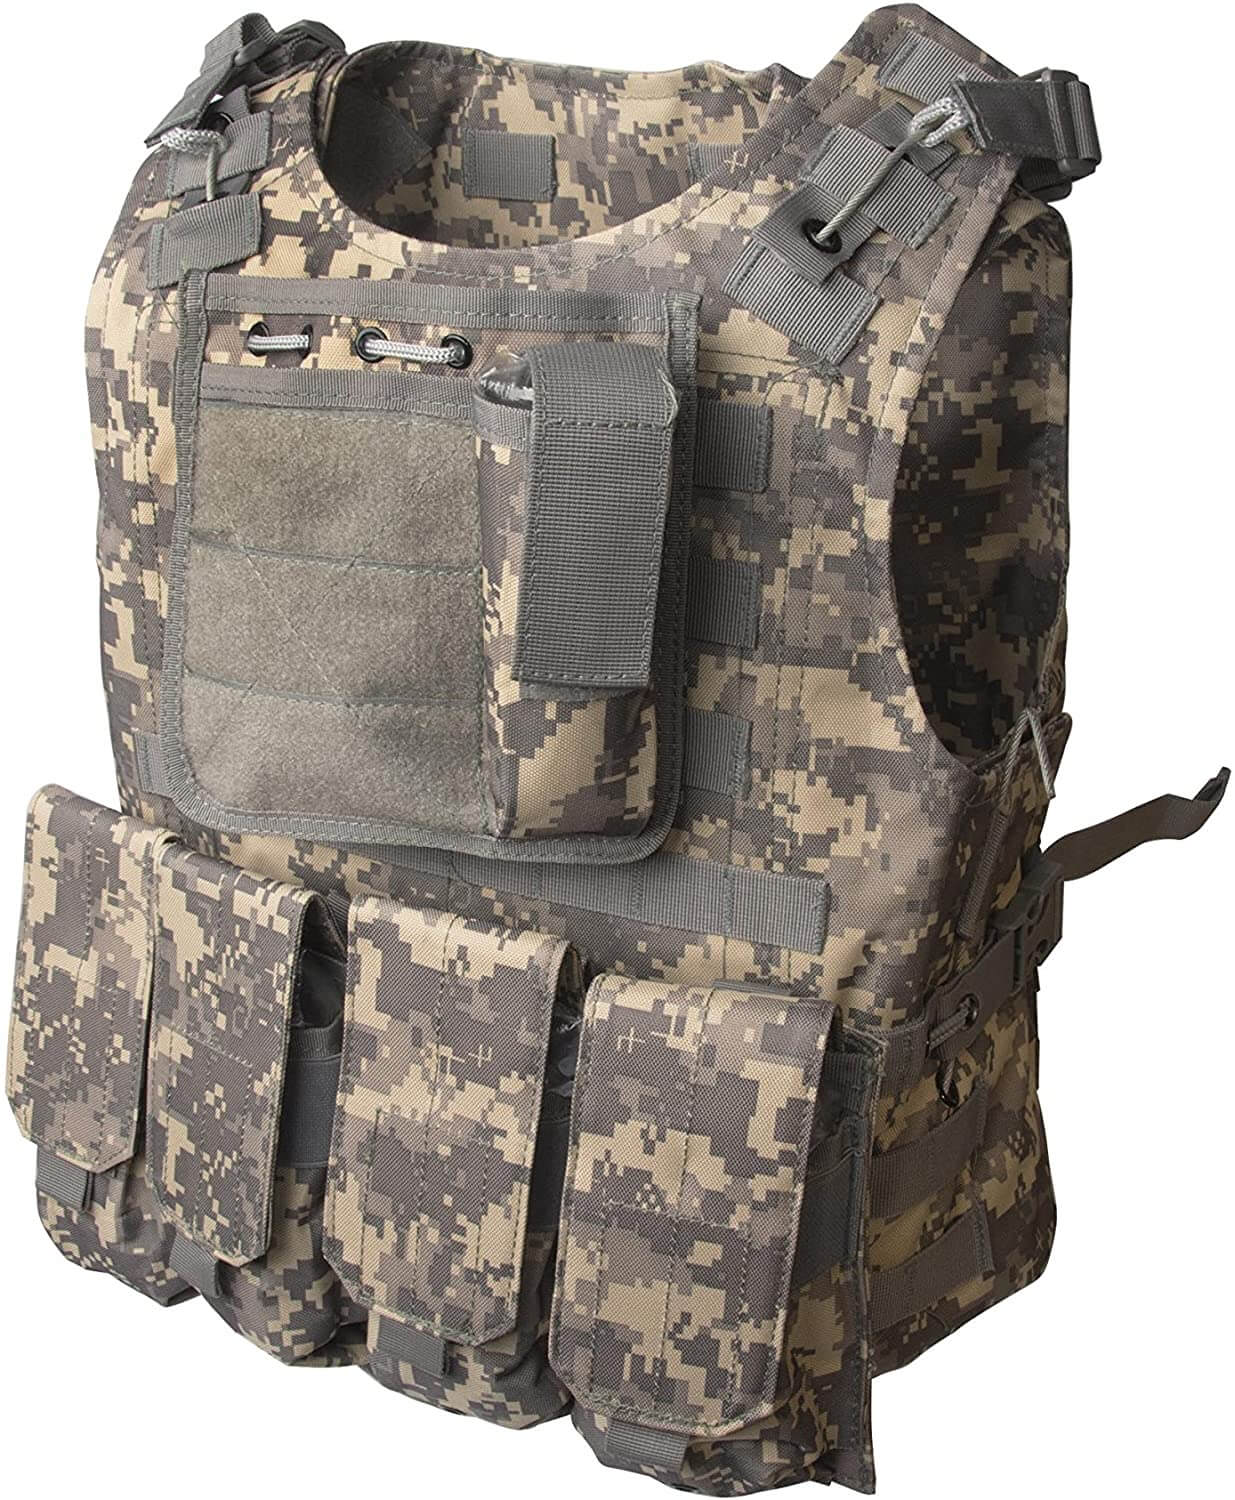 ALEKO PBTV52 Paintball Airsoft Chest Protector Tactical Vest